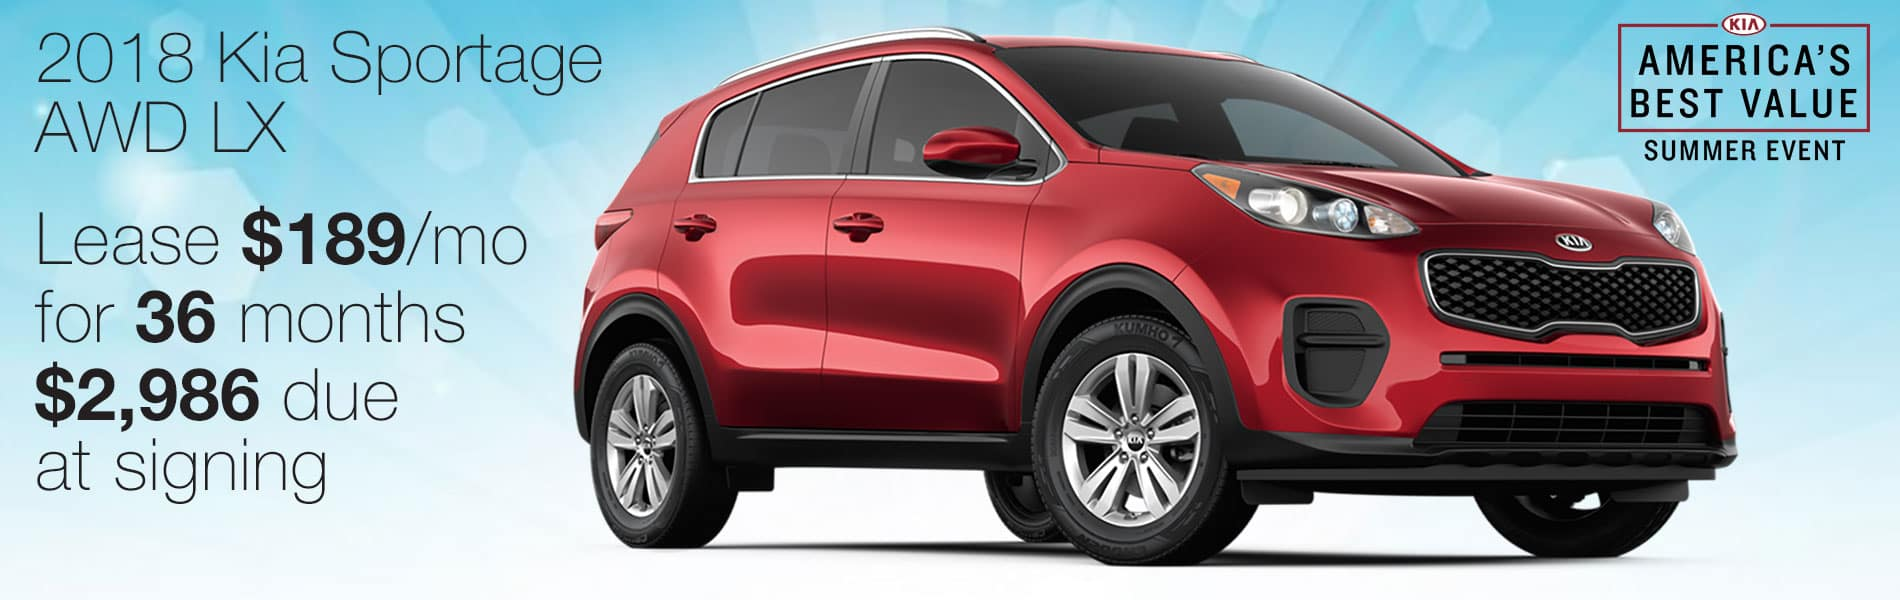 Lease a Sportage AWD LX for $189 per month with $2,986 due at signing